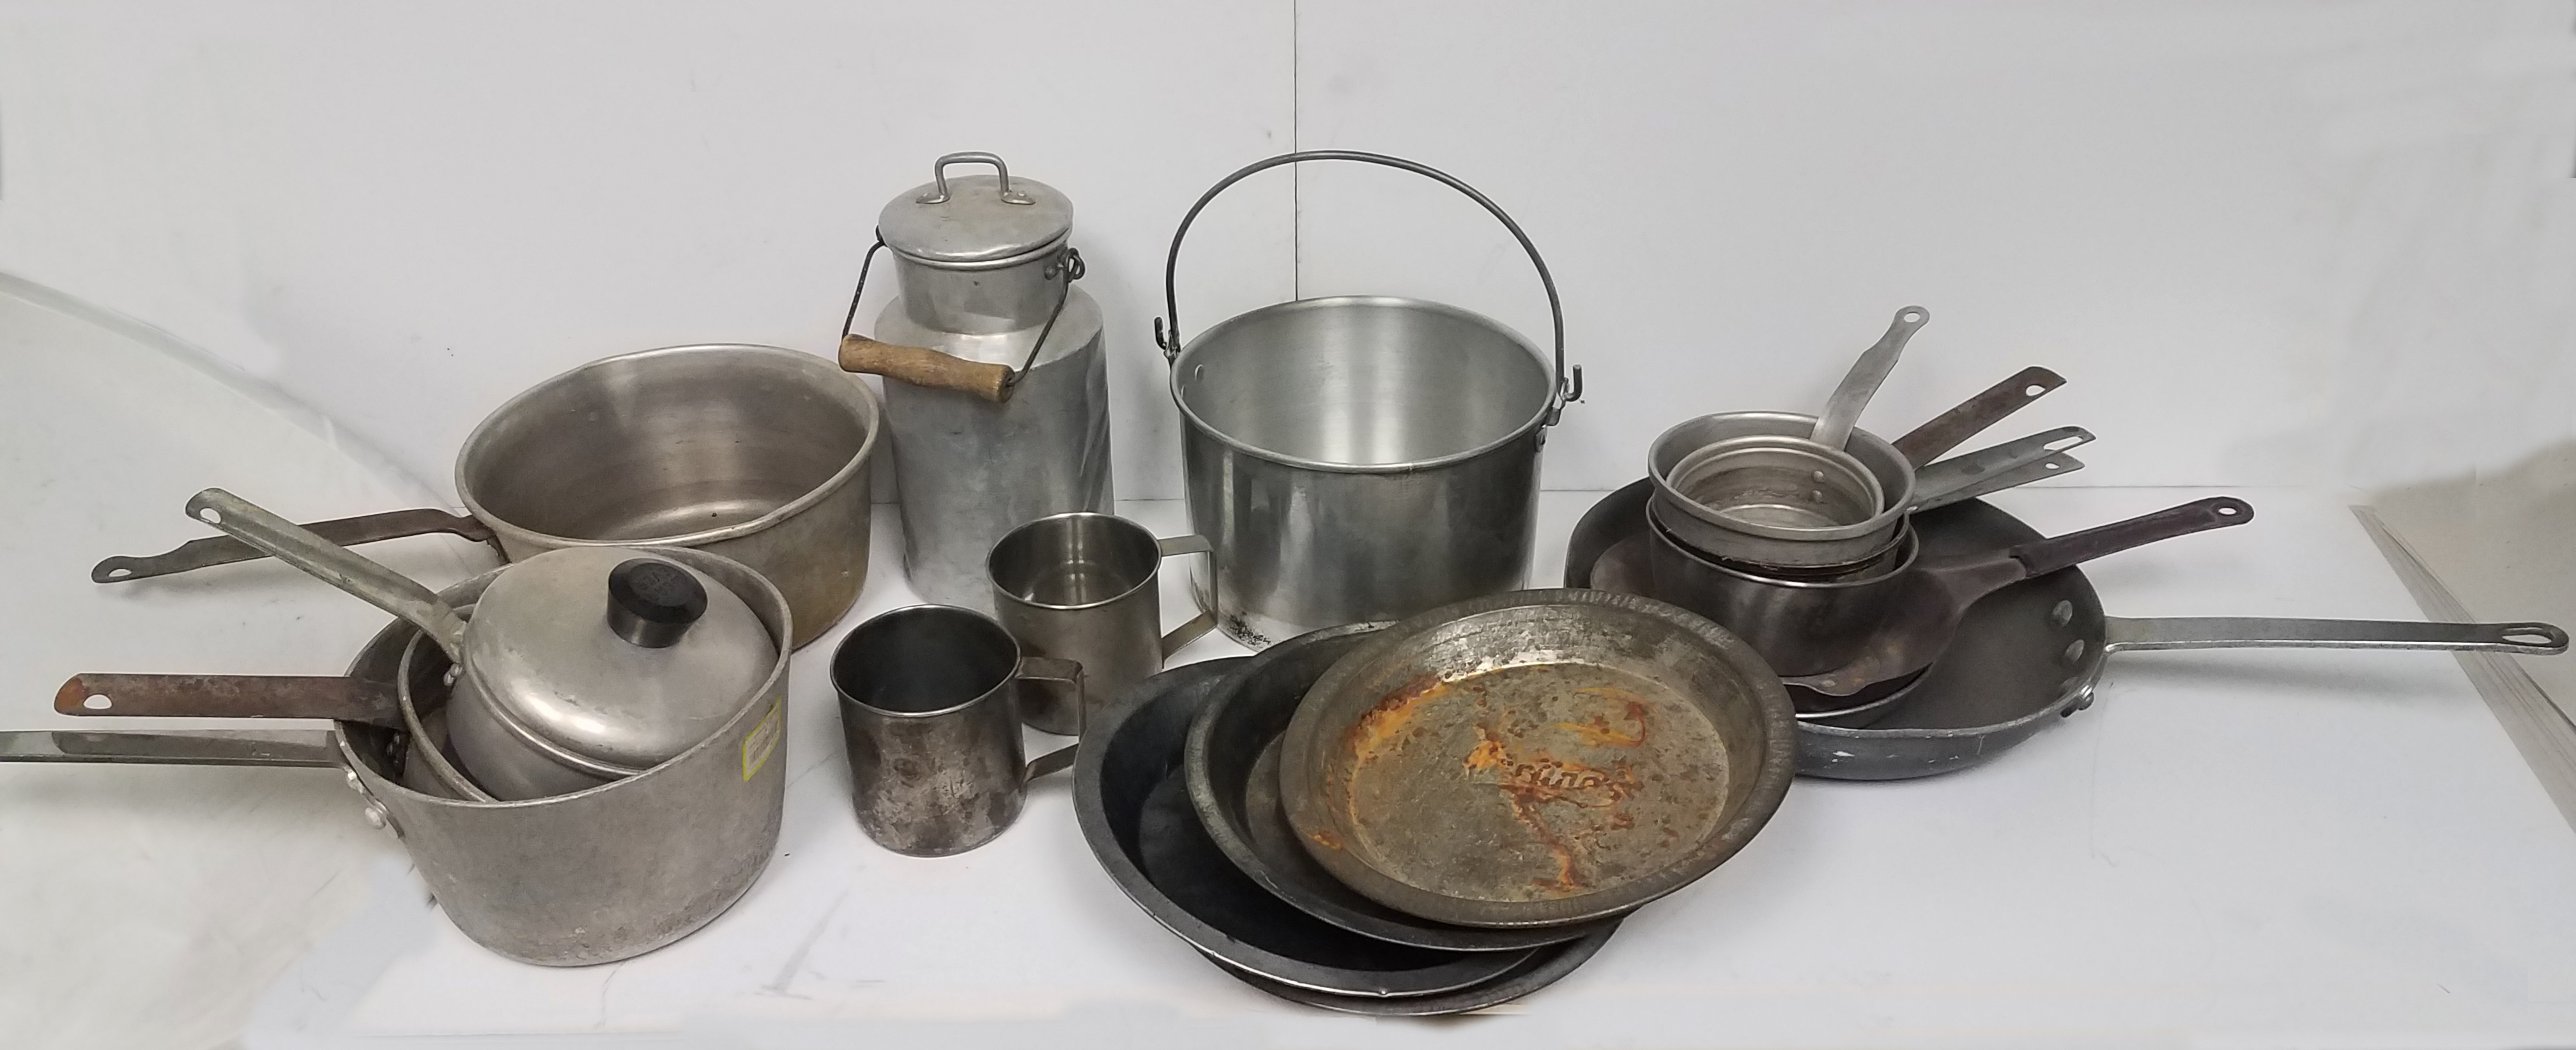 Cattle Drive pots and pans